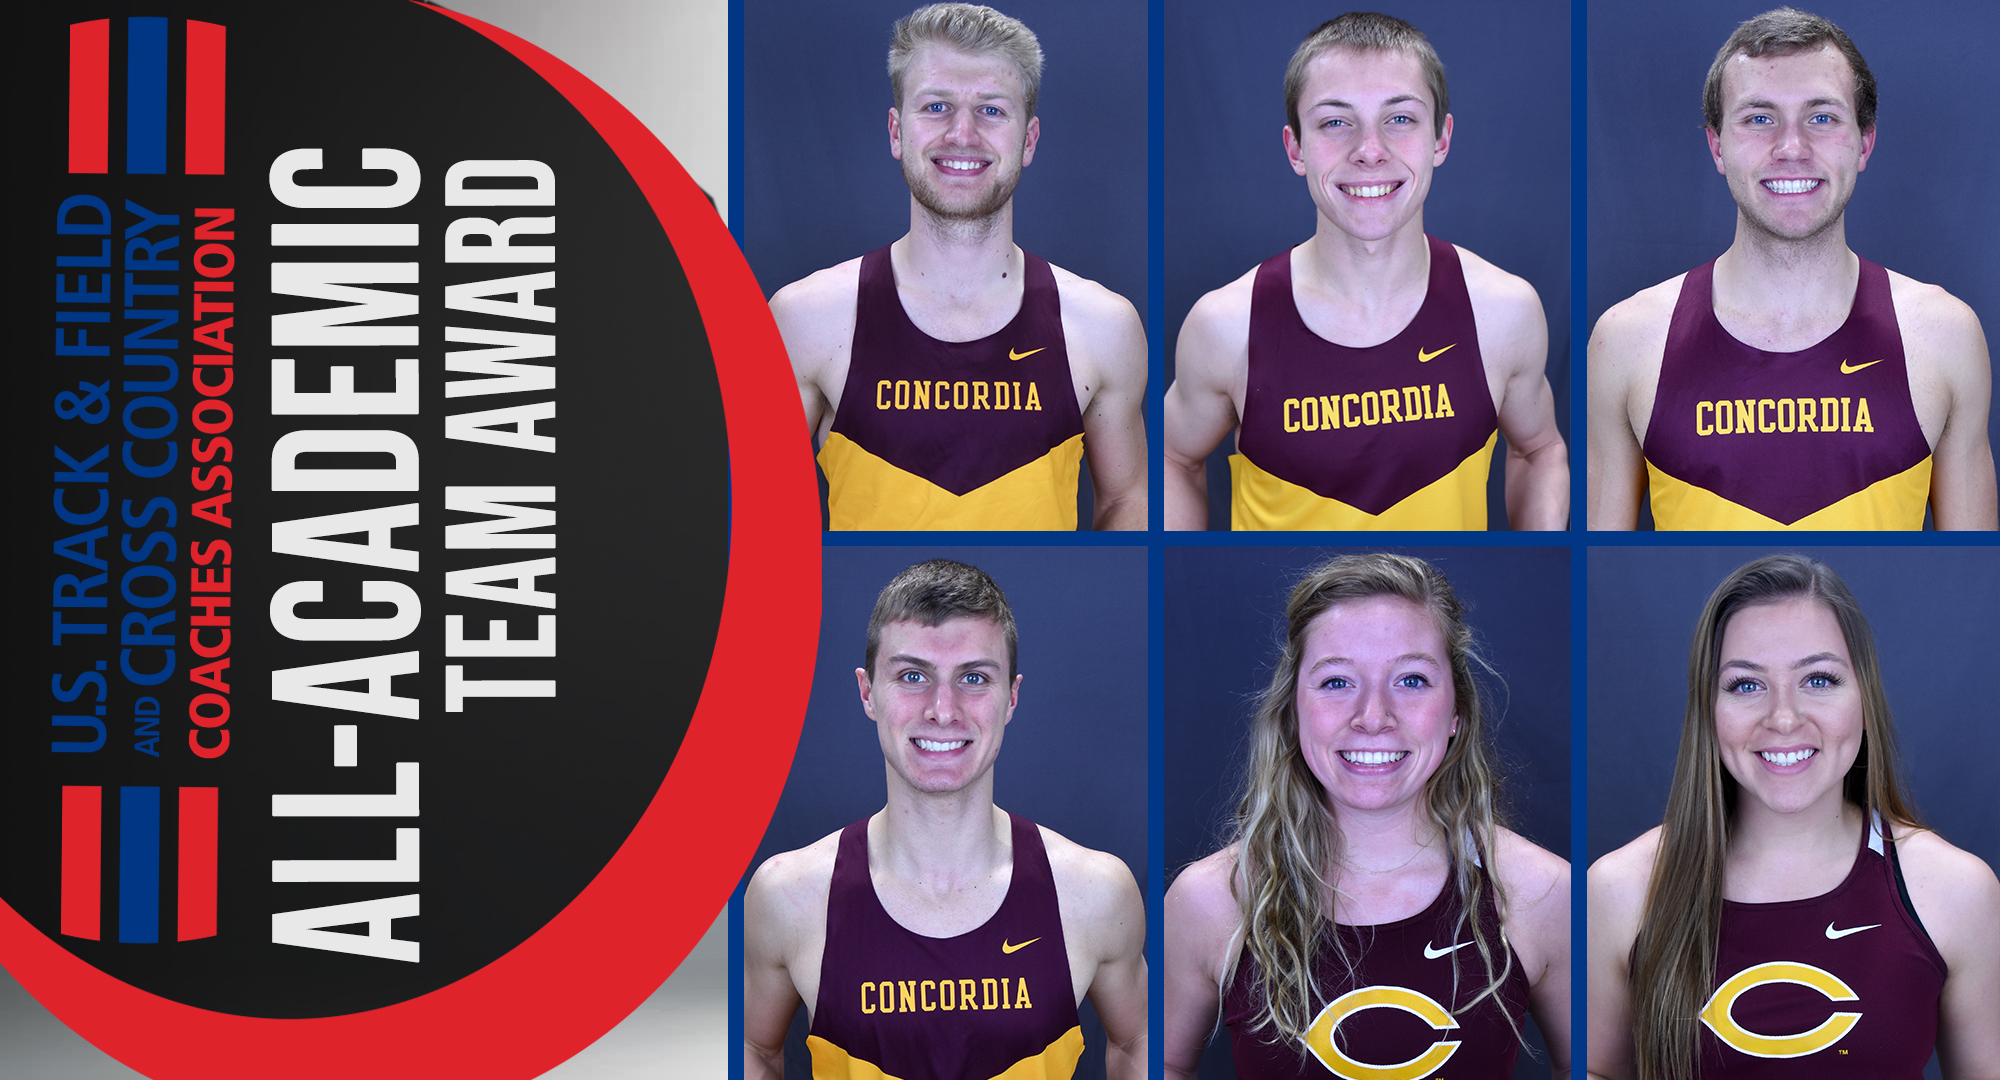 Matt Bye, Jesse Middendorf, Colin Schuller, Cal Wright, Josie Herrmann and Cayle Hovland all earned USTFCCCA Scholar All-Academic honors.